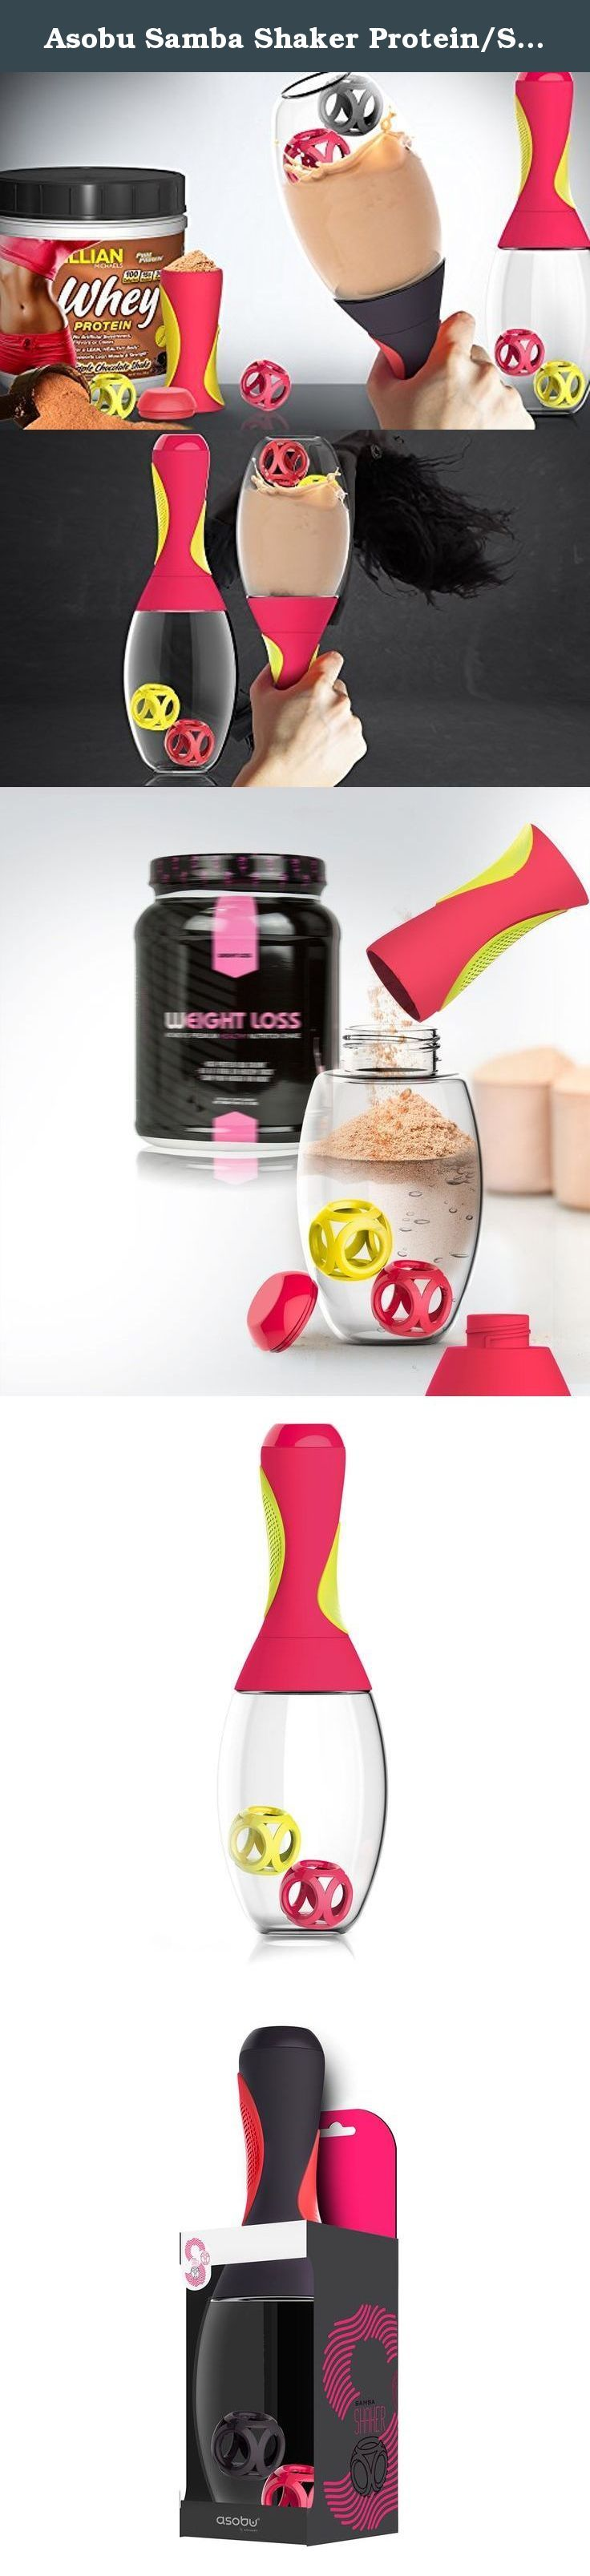 Asobu Samba Shaker Protein/Sport hydration powder bottle, 20 oz (RED/YELLOW). Workouts can get well, let's just say boring? Comes along the Asobu Samba Shaker to give you that kick!! Anyone who says weight loss shakes are tasteless never met the Samba Shaker, no more of those bland colorless weight loss shakes. Take out your shakers add ingredients like peanut butter, applesauce, or yogurt to your protein or meal-replacement shakes for added flavor. Get creative. And then shake. After you...